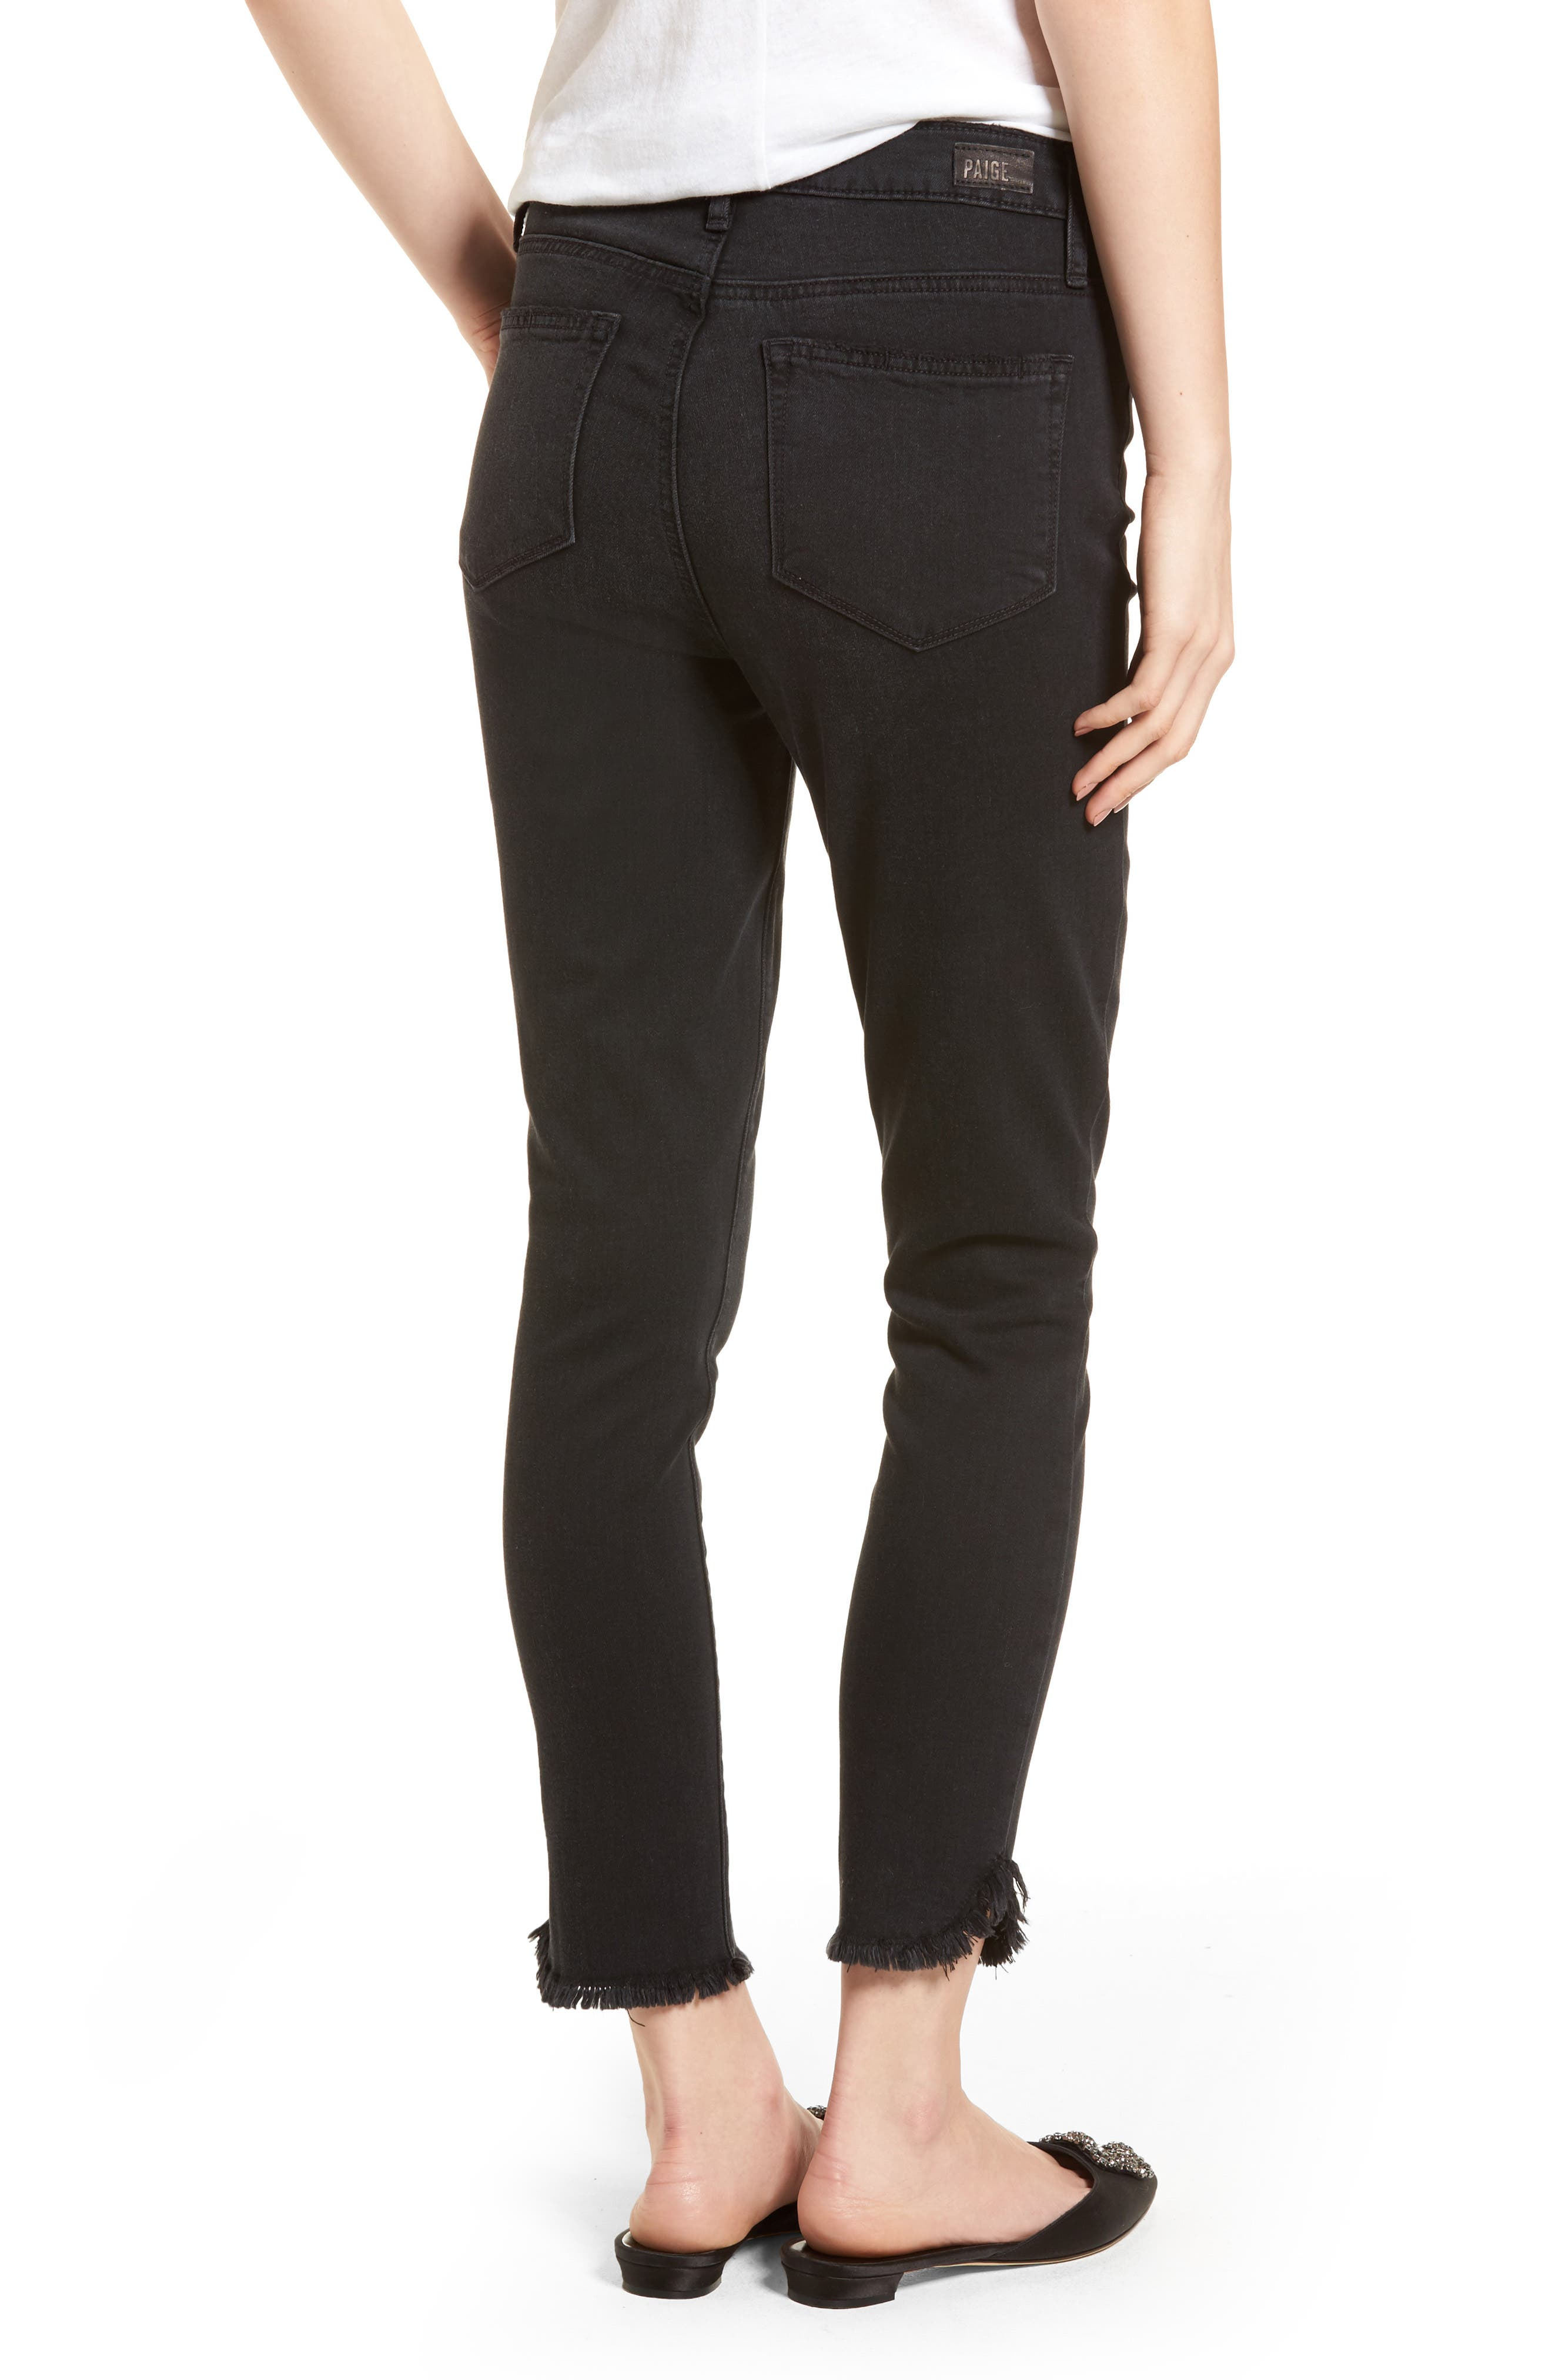 Transcend - Margot High Waist Crop Ultra Skinny Jeans,                             Alternate thumbnail 2, color,                             Draco